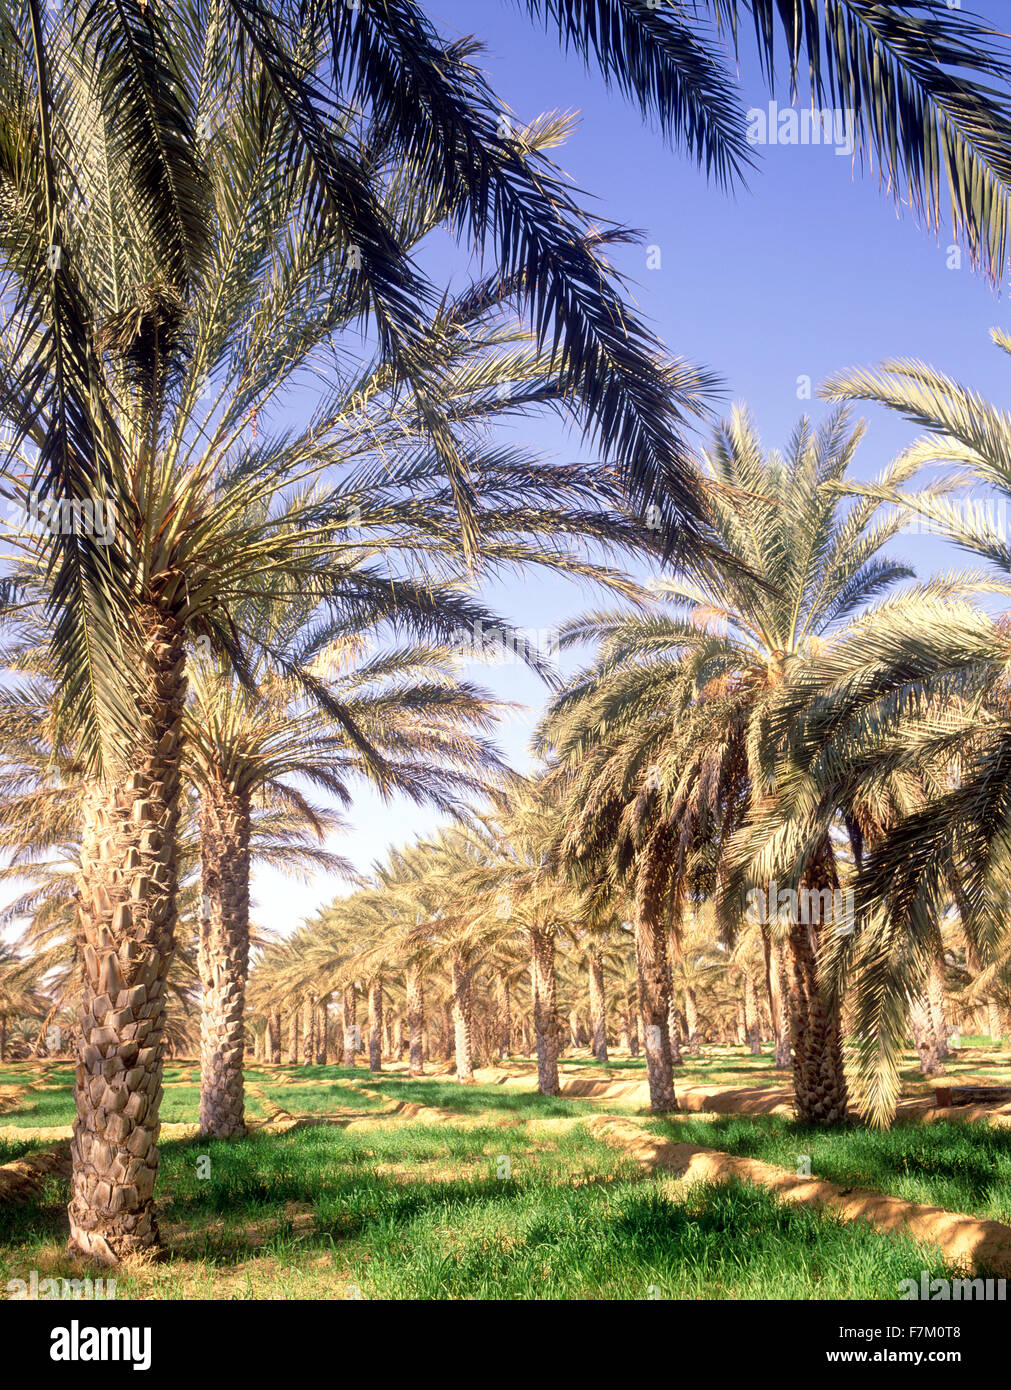 La palmeraie de Tozeur. Tozeur, Tunisie. Photo Stock